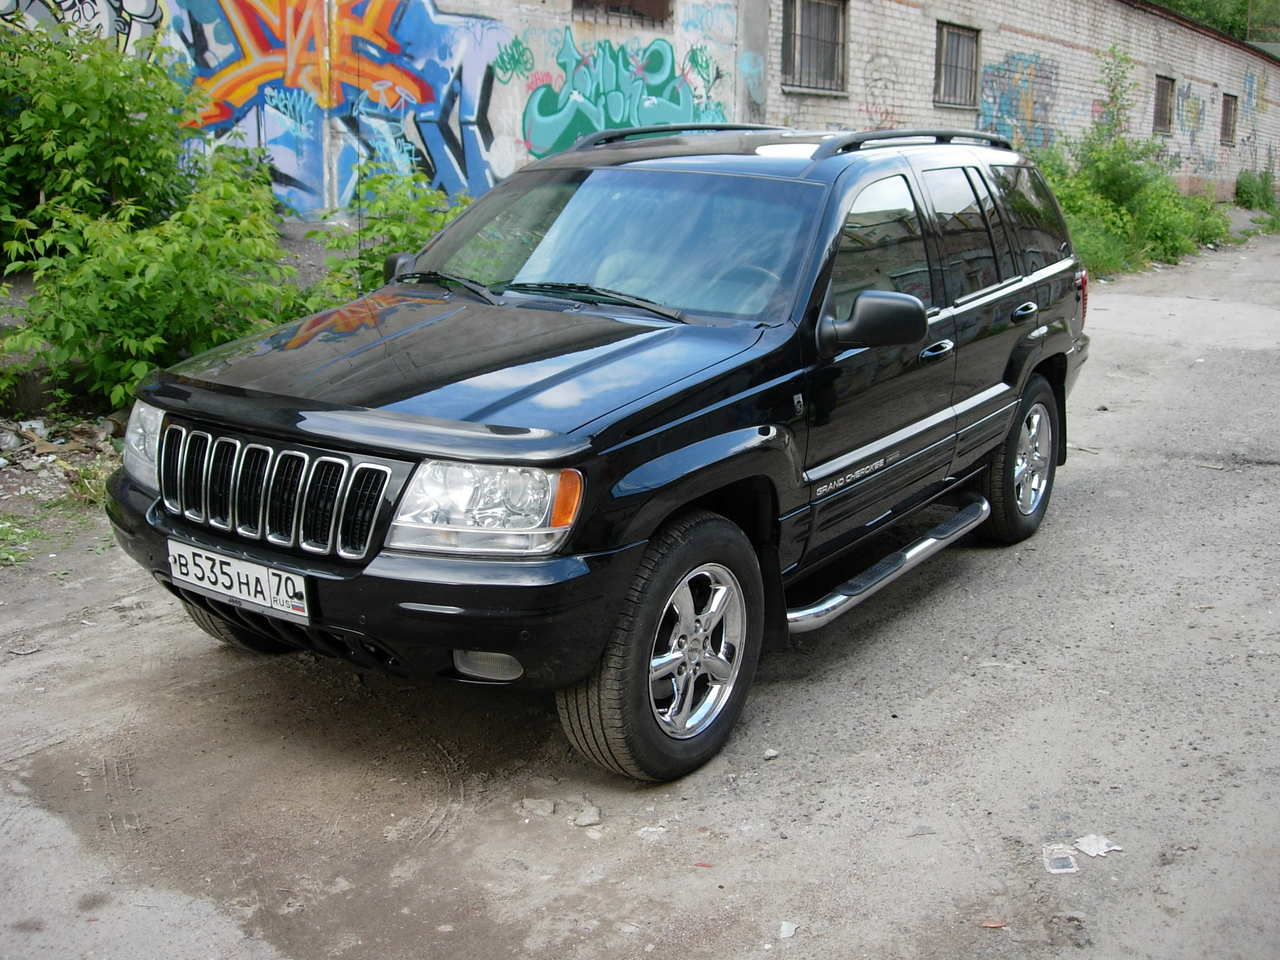 2001 jeep grand cherokee pictures 4700cc gasoline. Black Bedroom Furniture Sets. Home Design Ideas